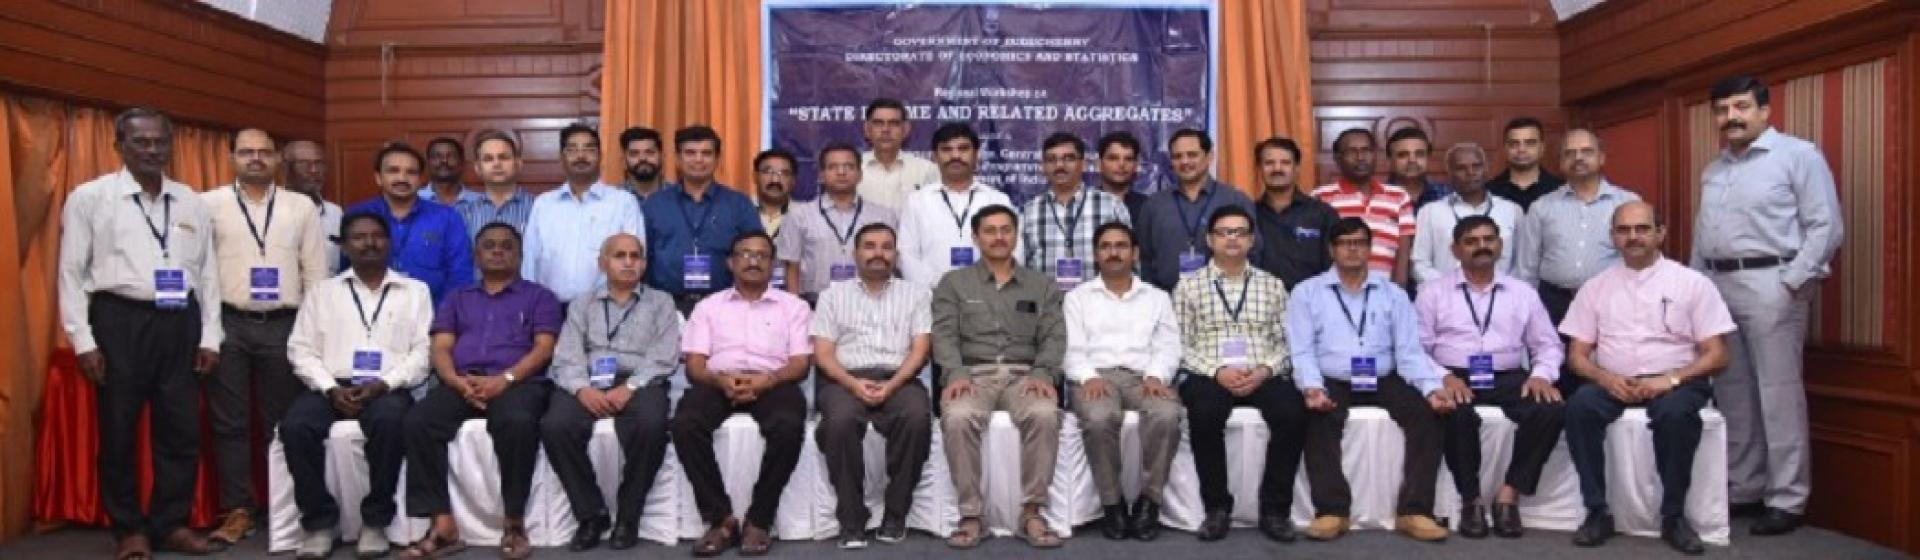 Regional Workshop on State Frame and Related Aggregates